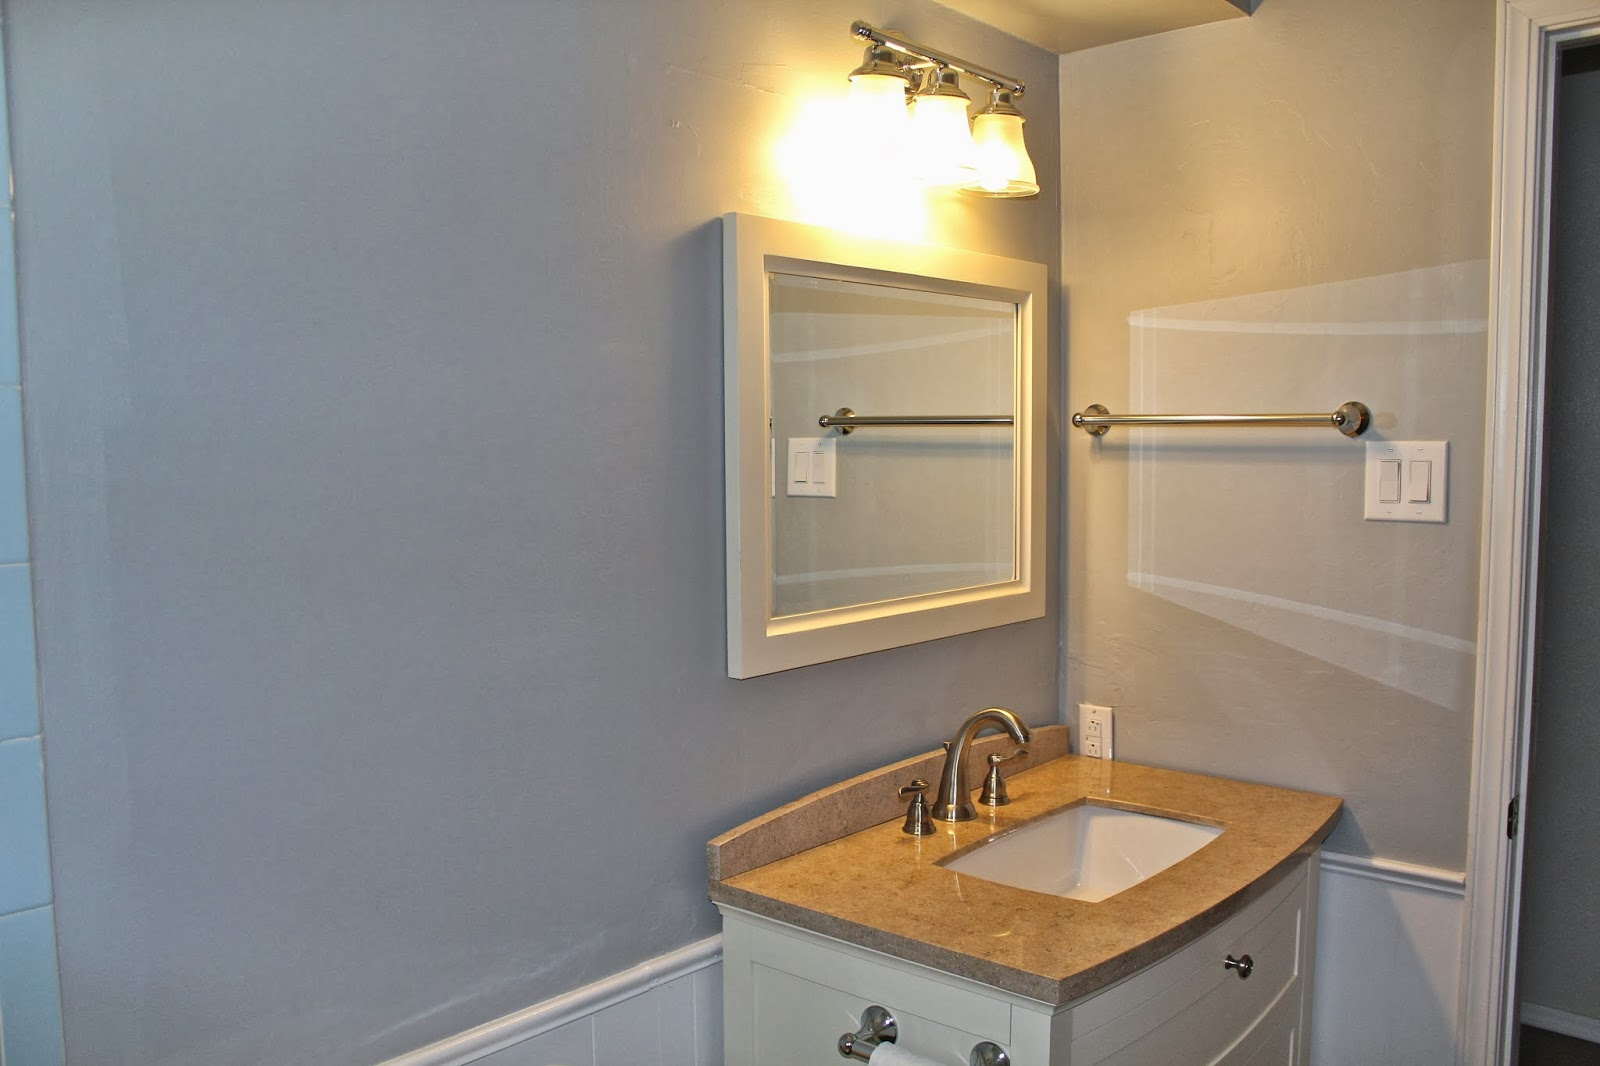 Bedrooms And Hall Bathroom Tour Emma Marie Designs